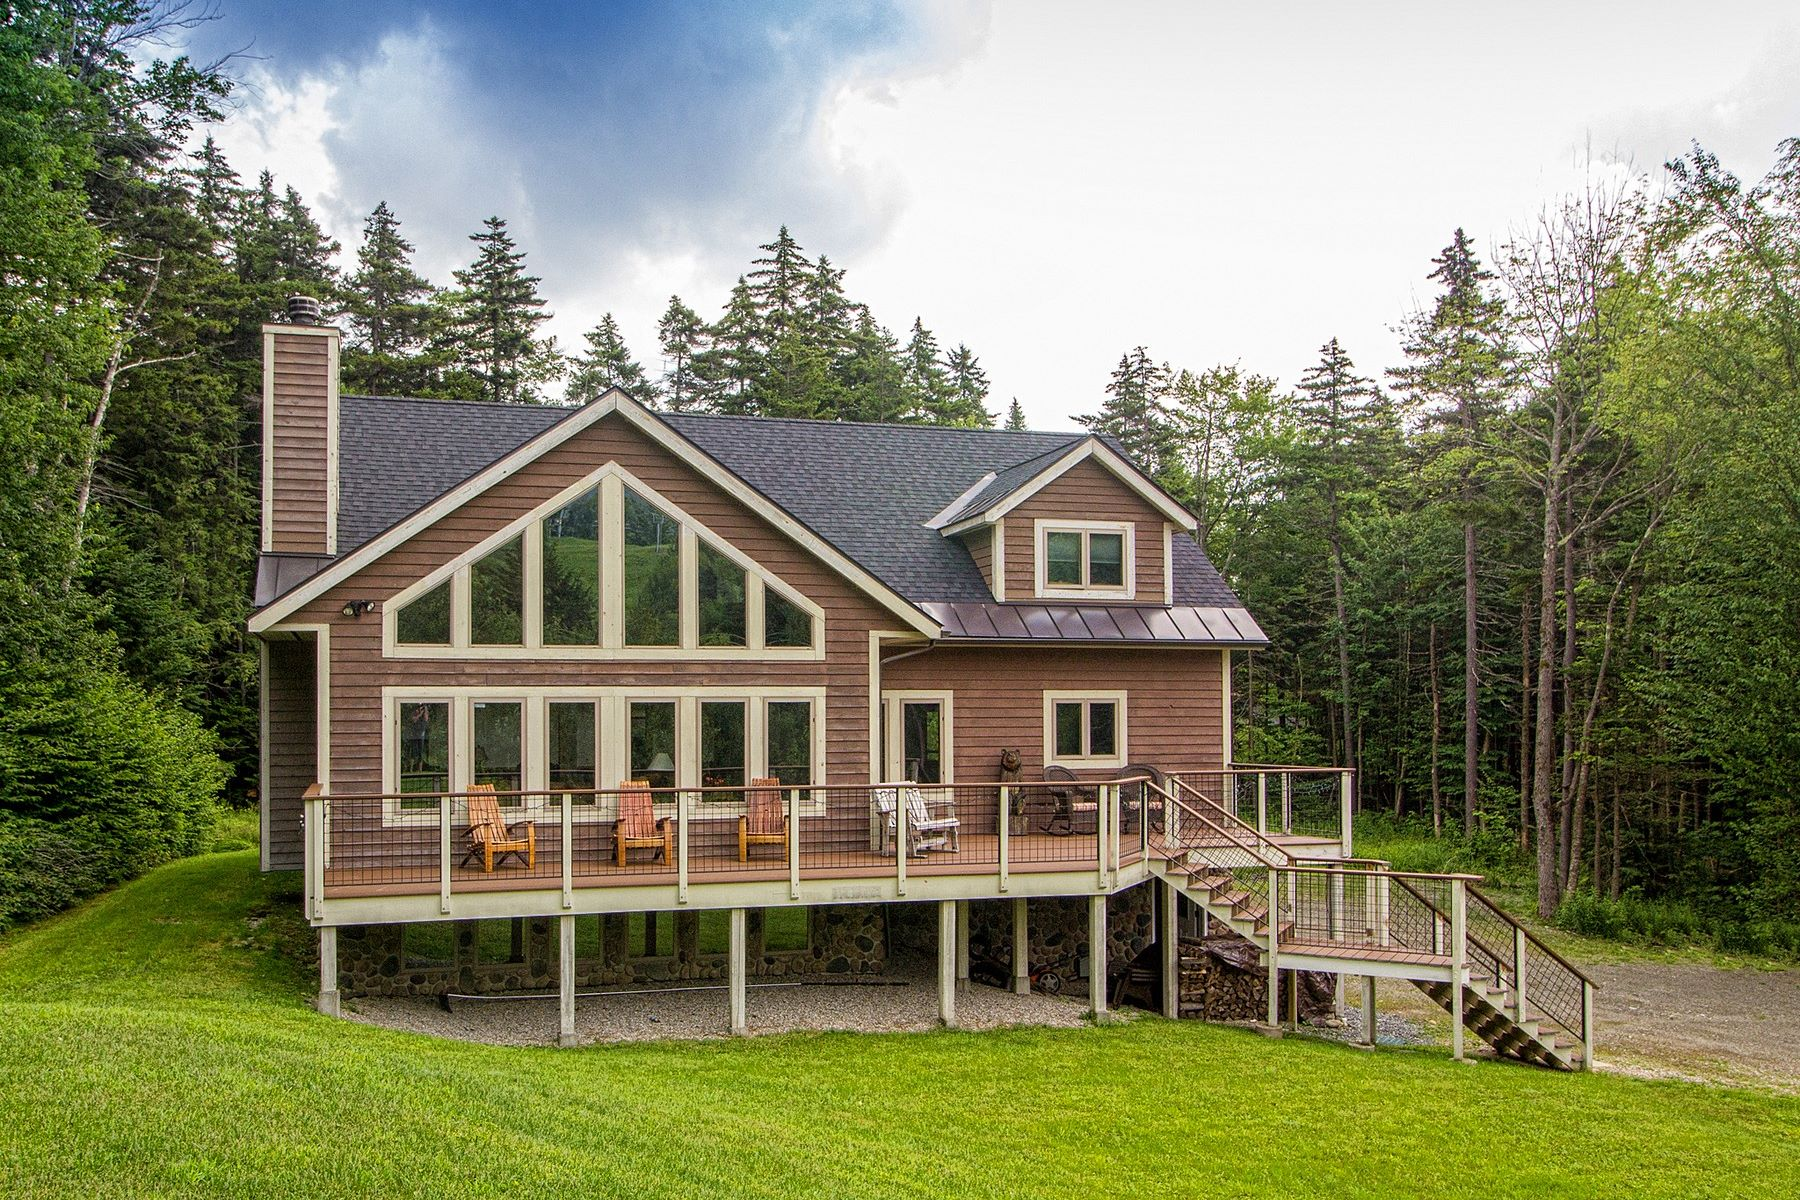 Single Family Home for Sale at 529 Coldbrook Road, Wilmington 529 Coldbrook Rd Wilmington, Vermont 05363 United States